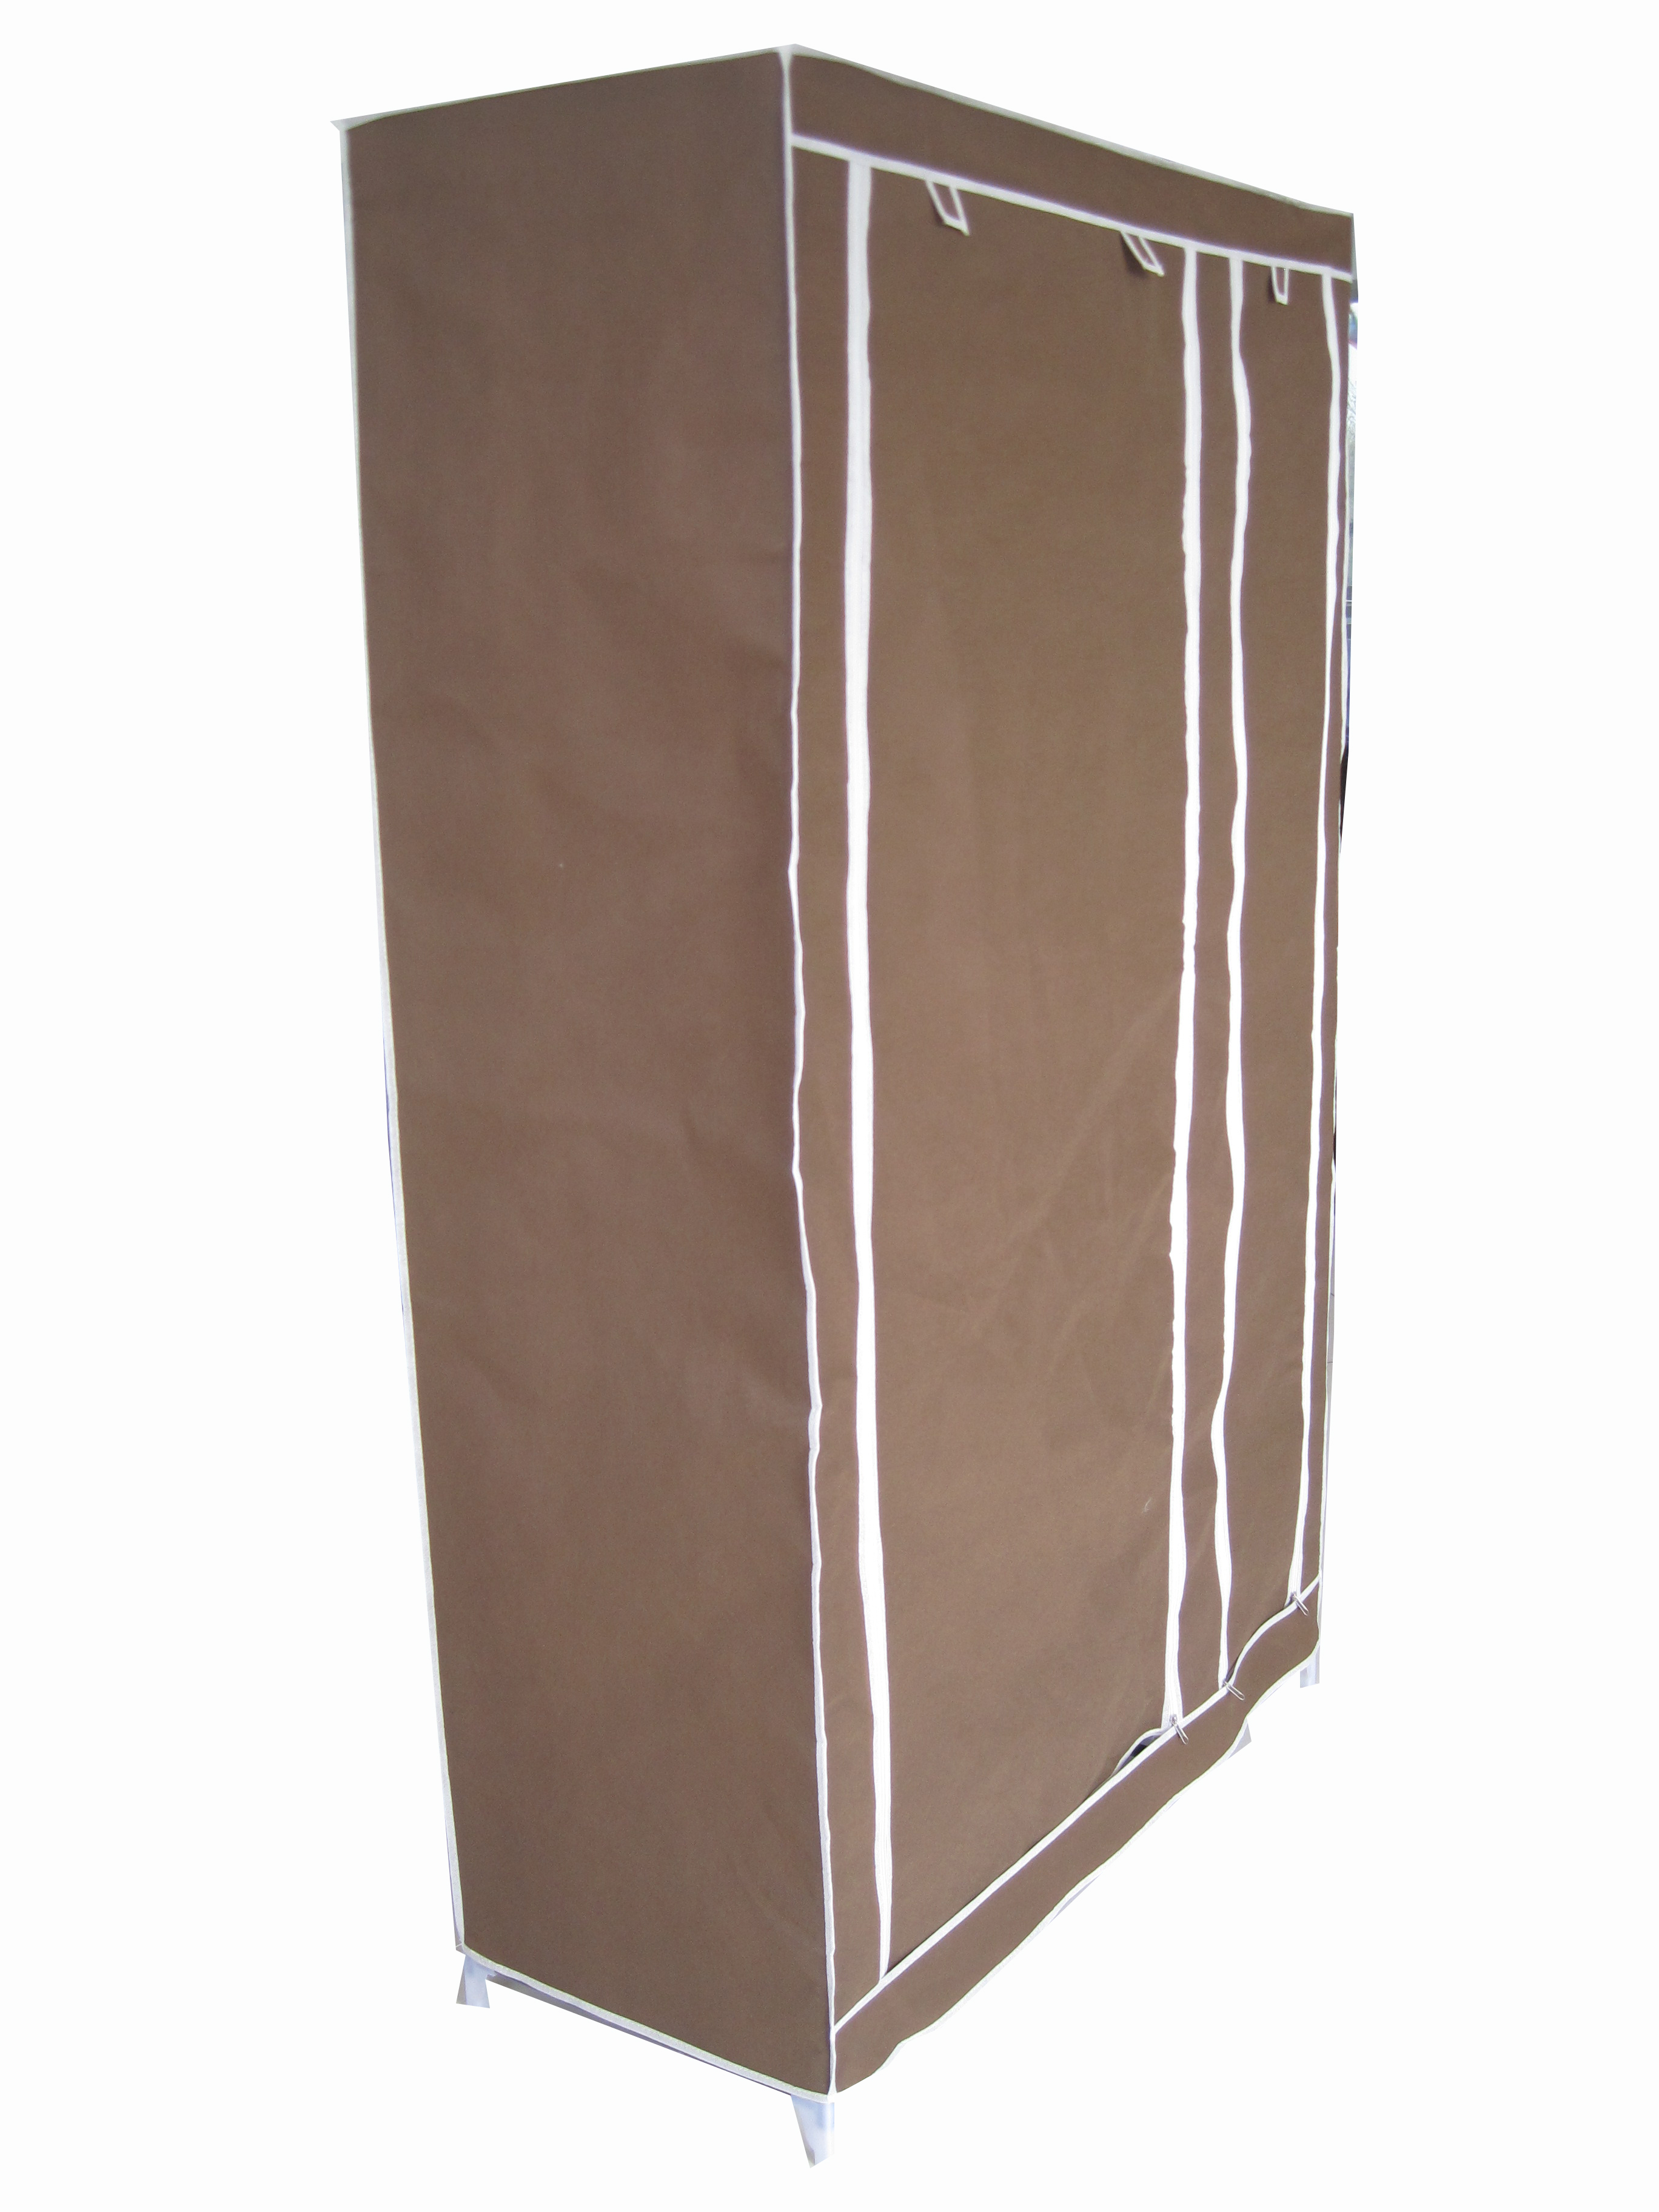 Canvas Storage Boxes For Wardrobes: NEW BROWN DOUBLE CANVAS WARDROBE CLOTHES RAIL STORAGE